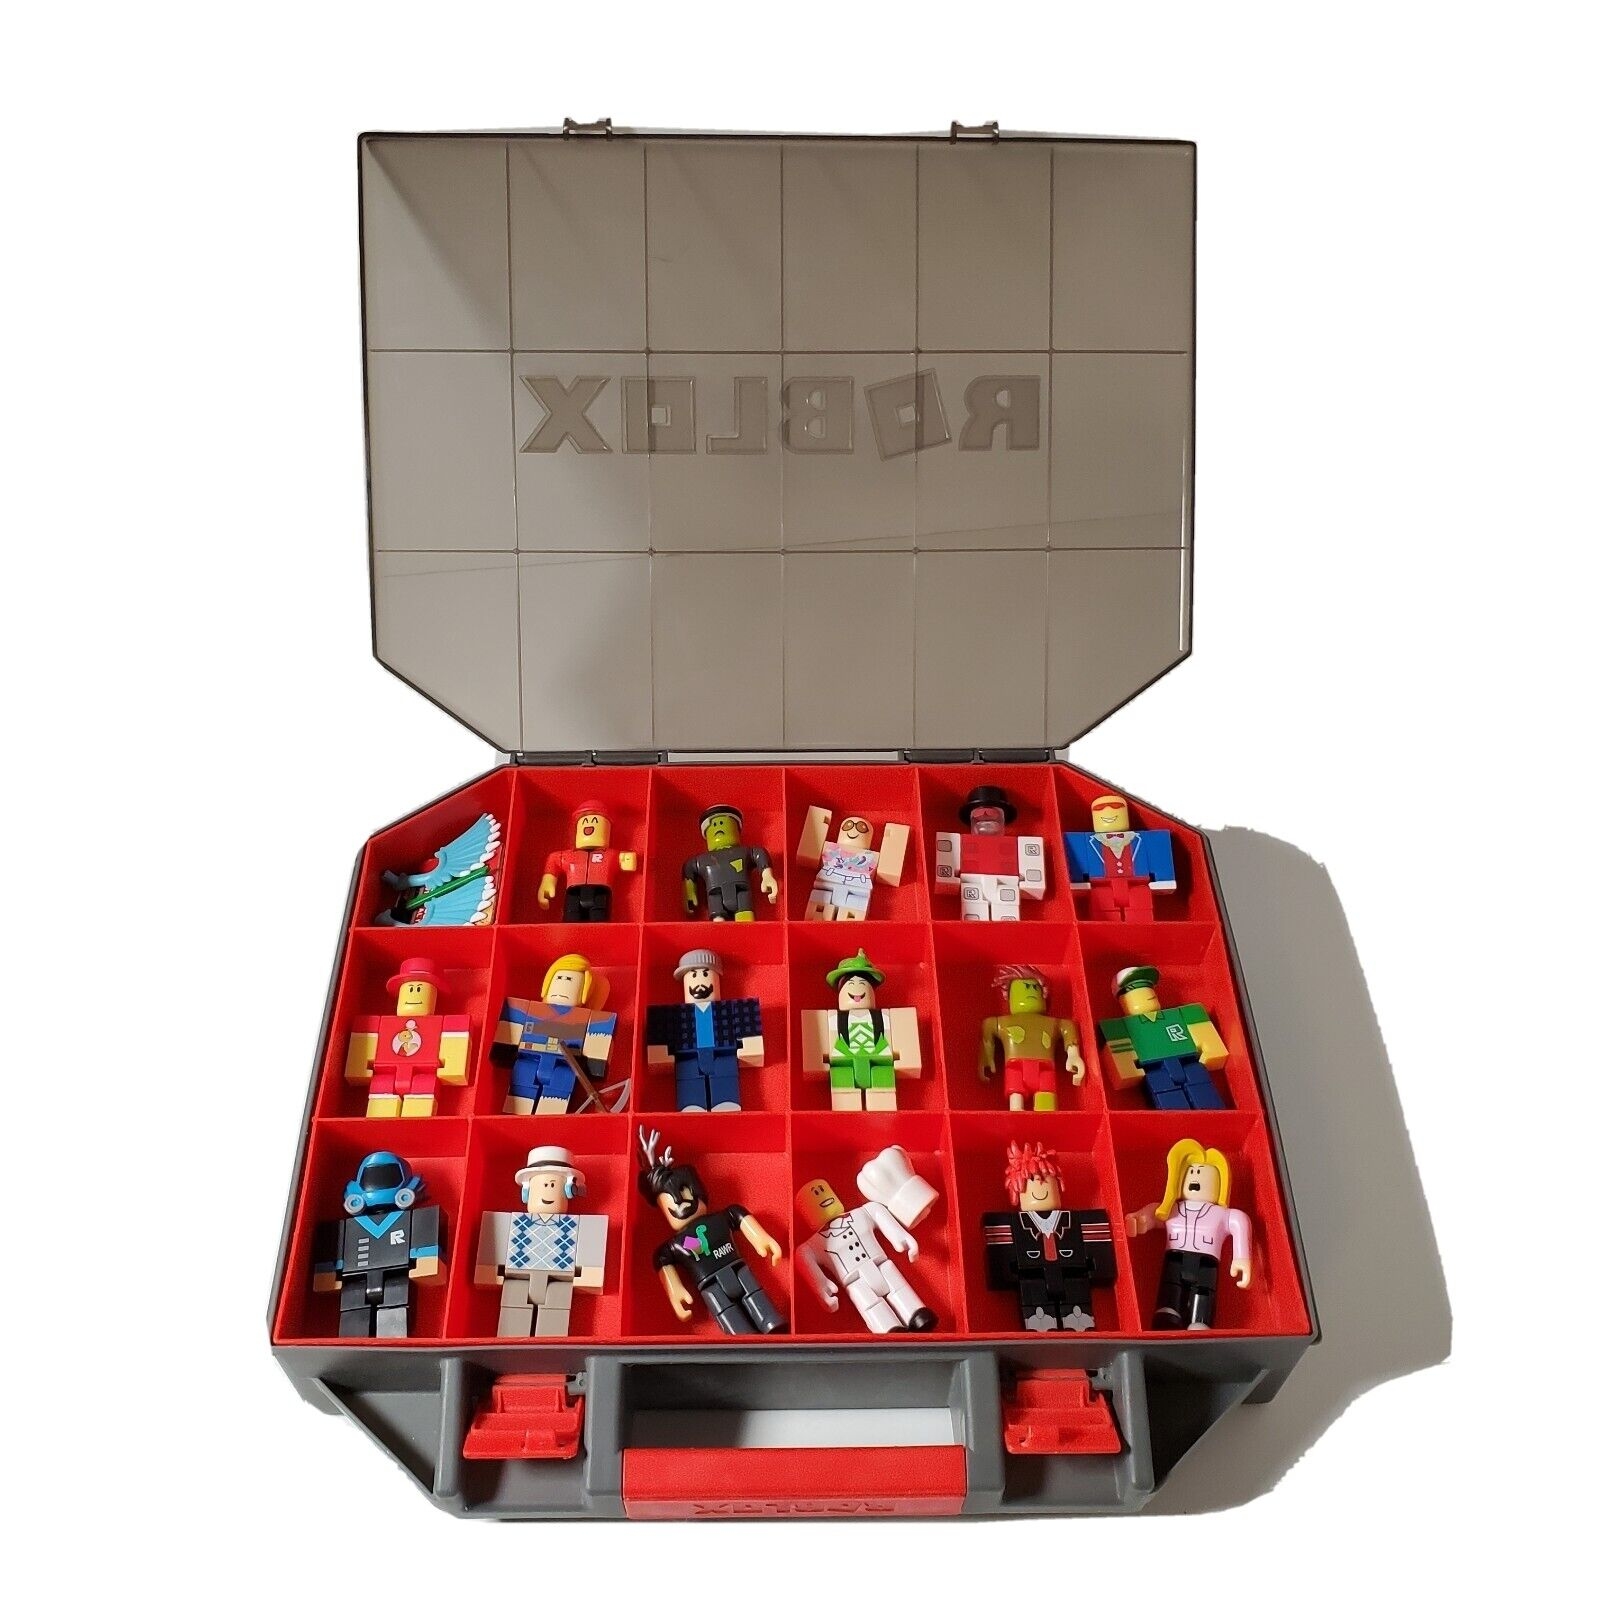 17 Roblox Characters With Case